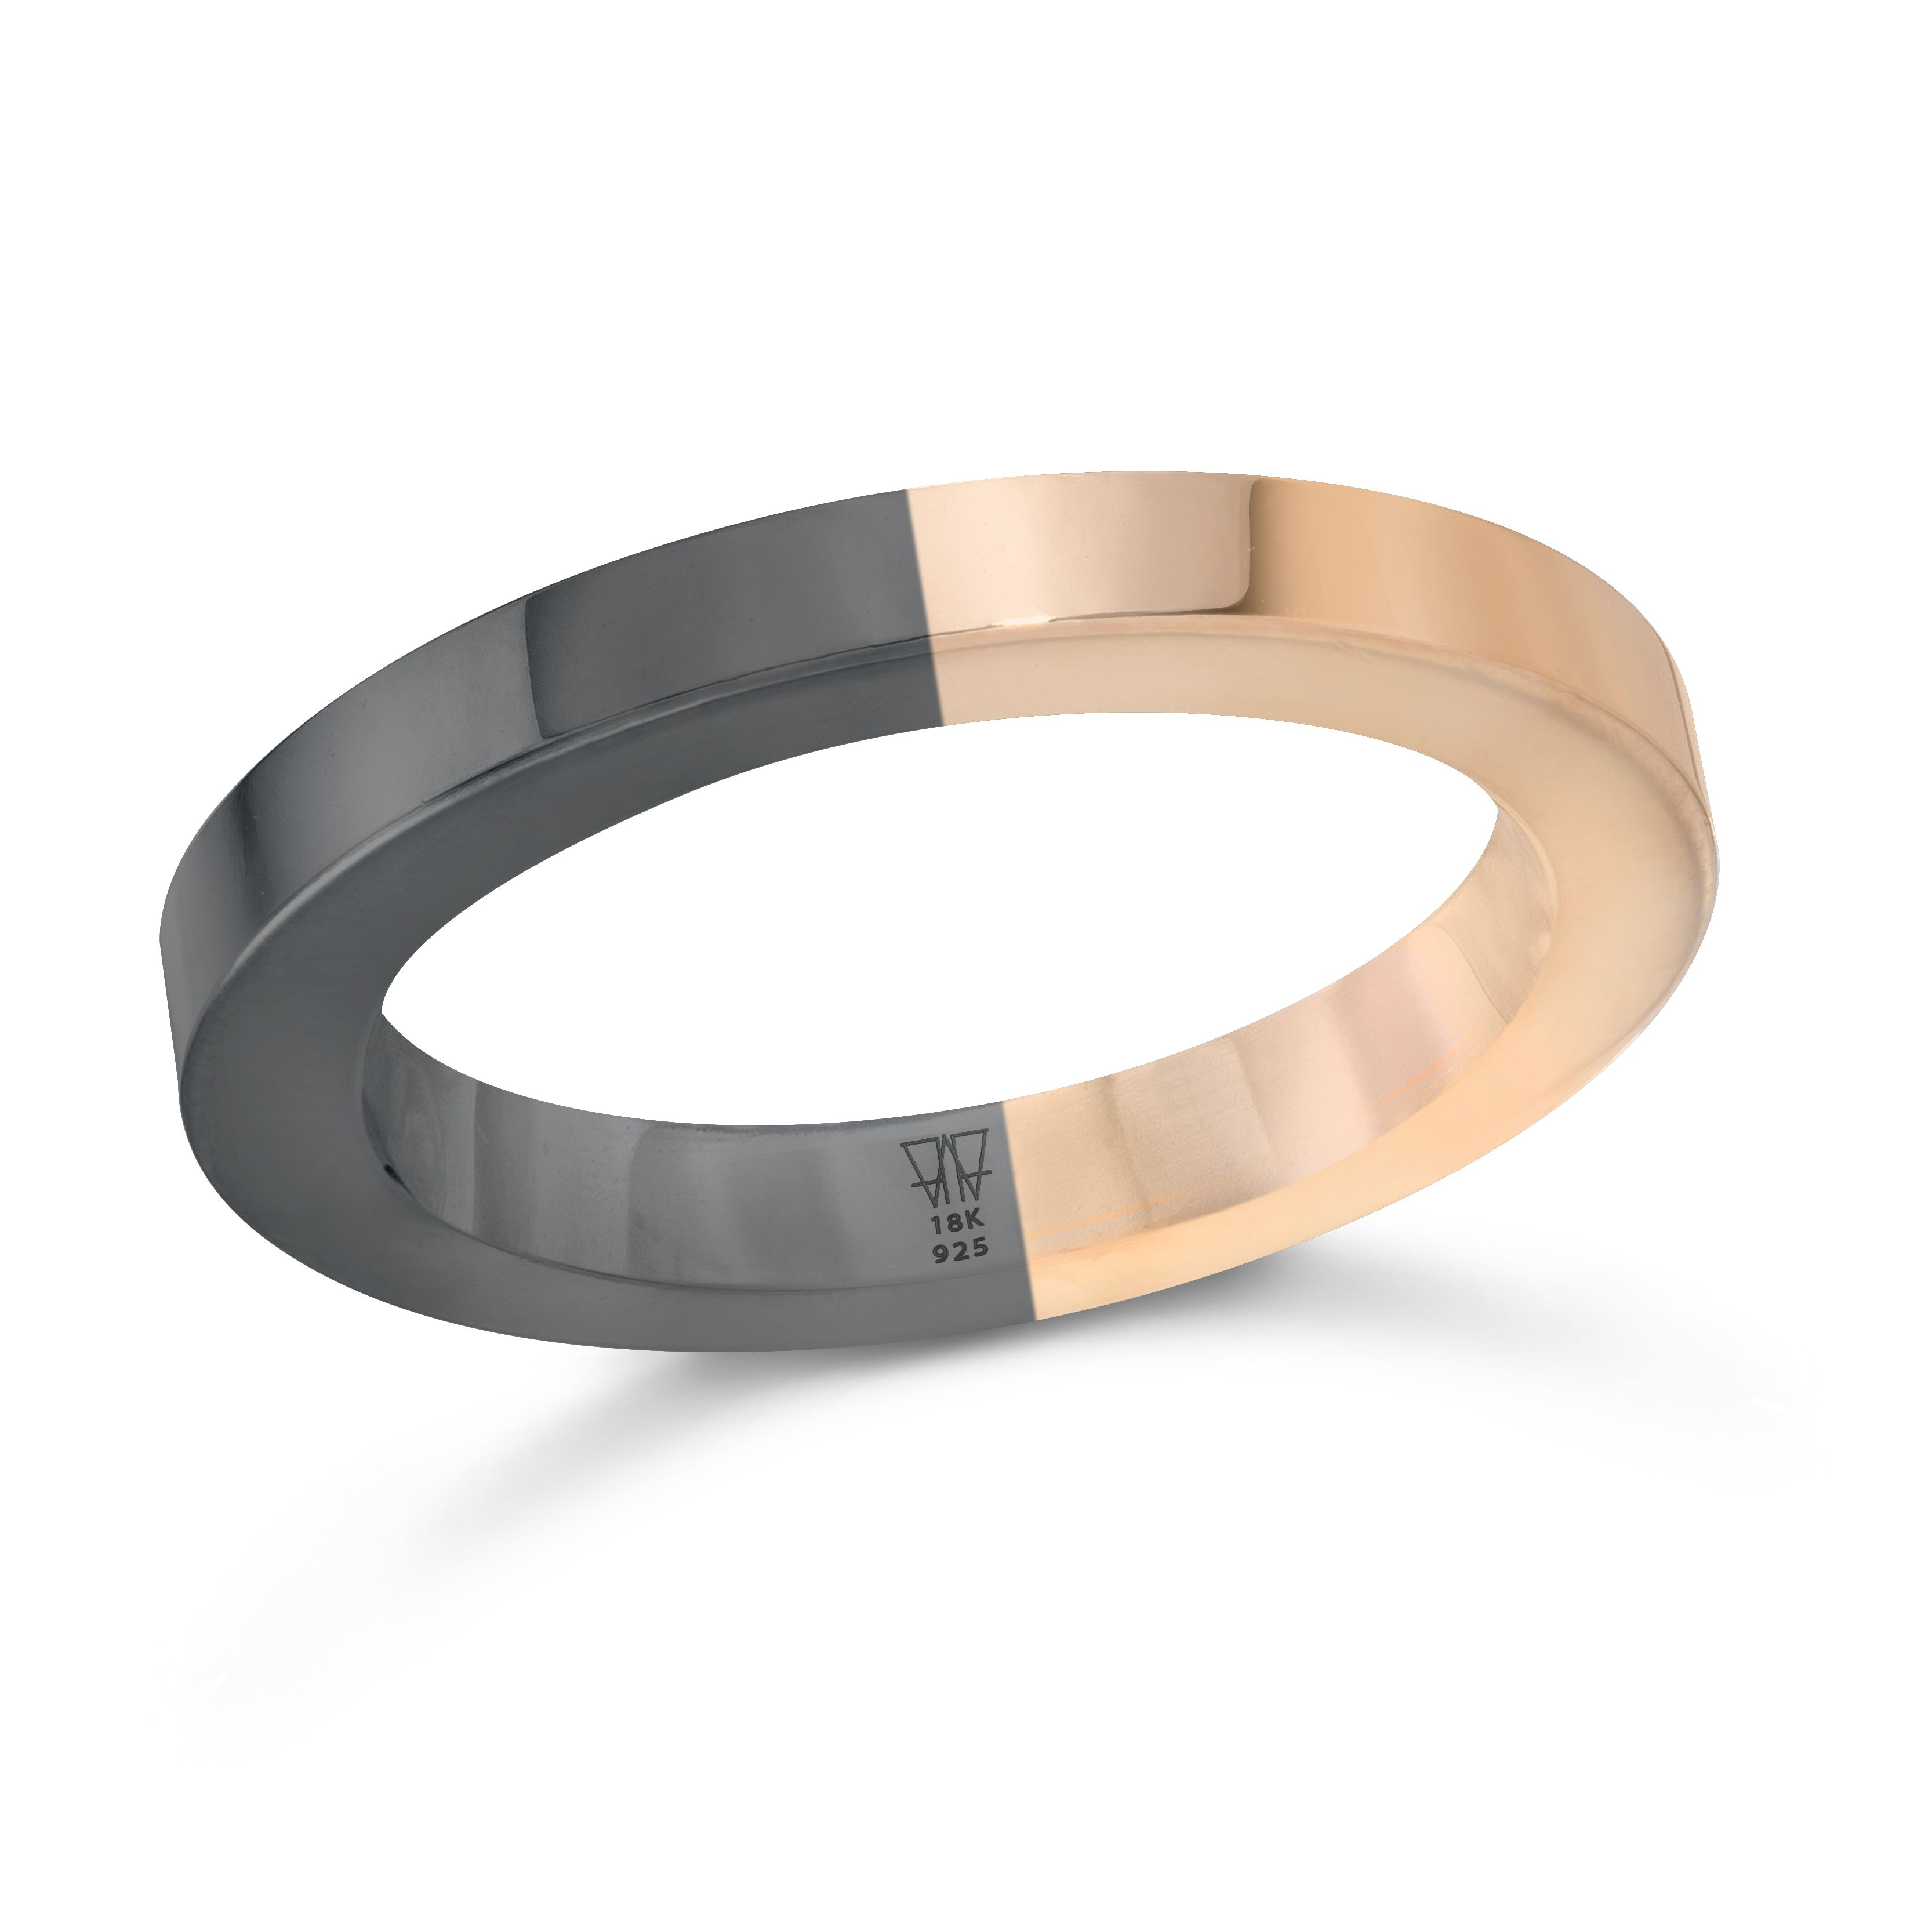 Walters Faith Grant 1.5Mm Simple Cubed Band Ring Silver HOfr17QPR